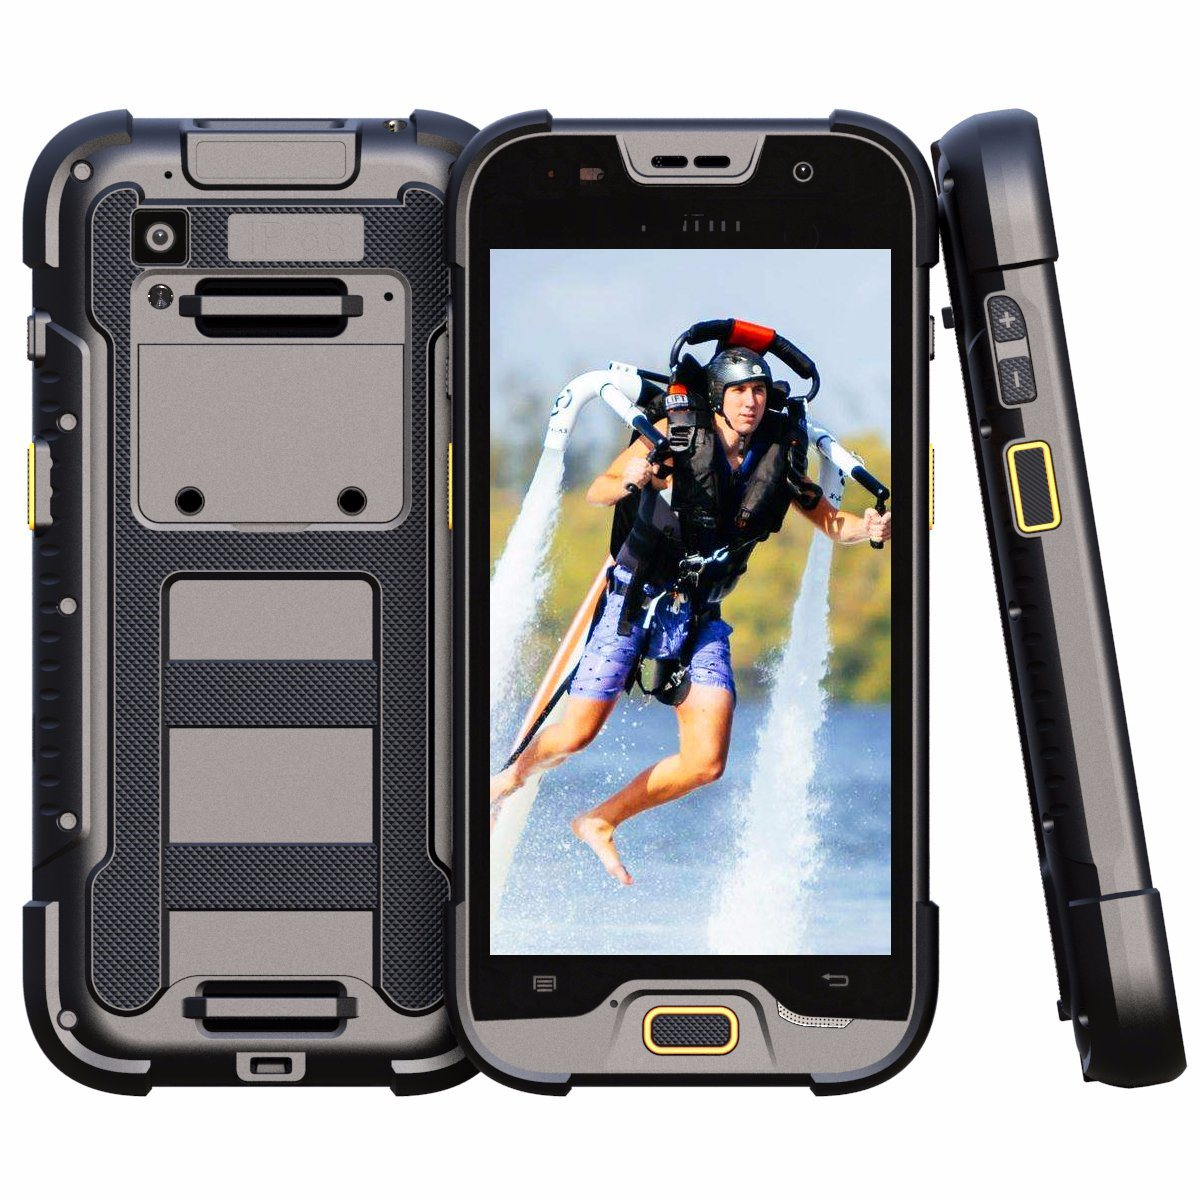 IP68 4G Lte Rugged Smart Phone with 1/2D Barcode Scanner Feature